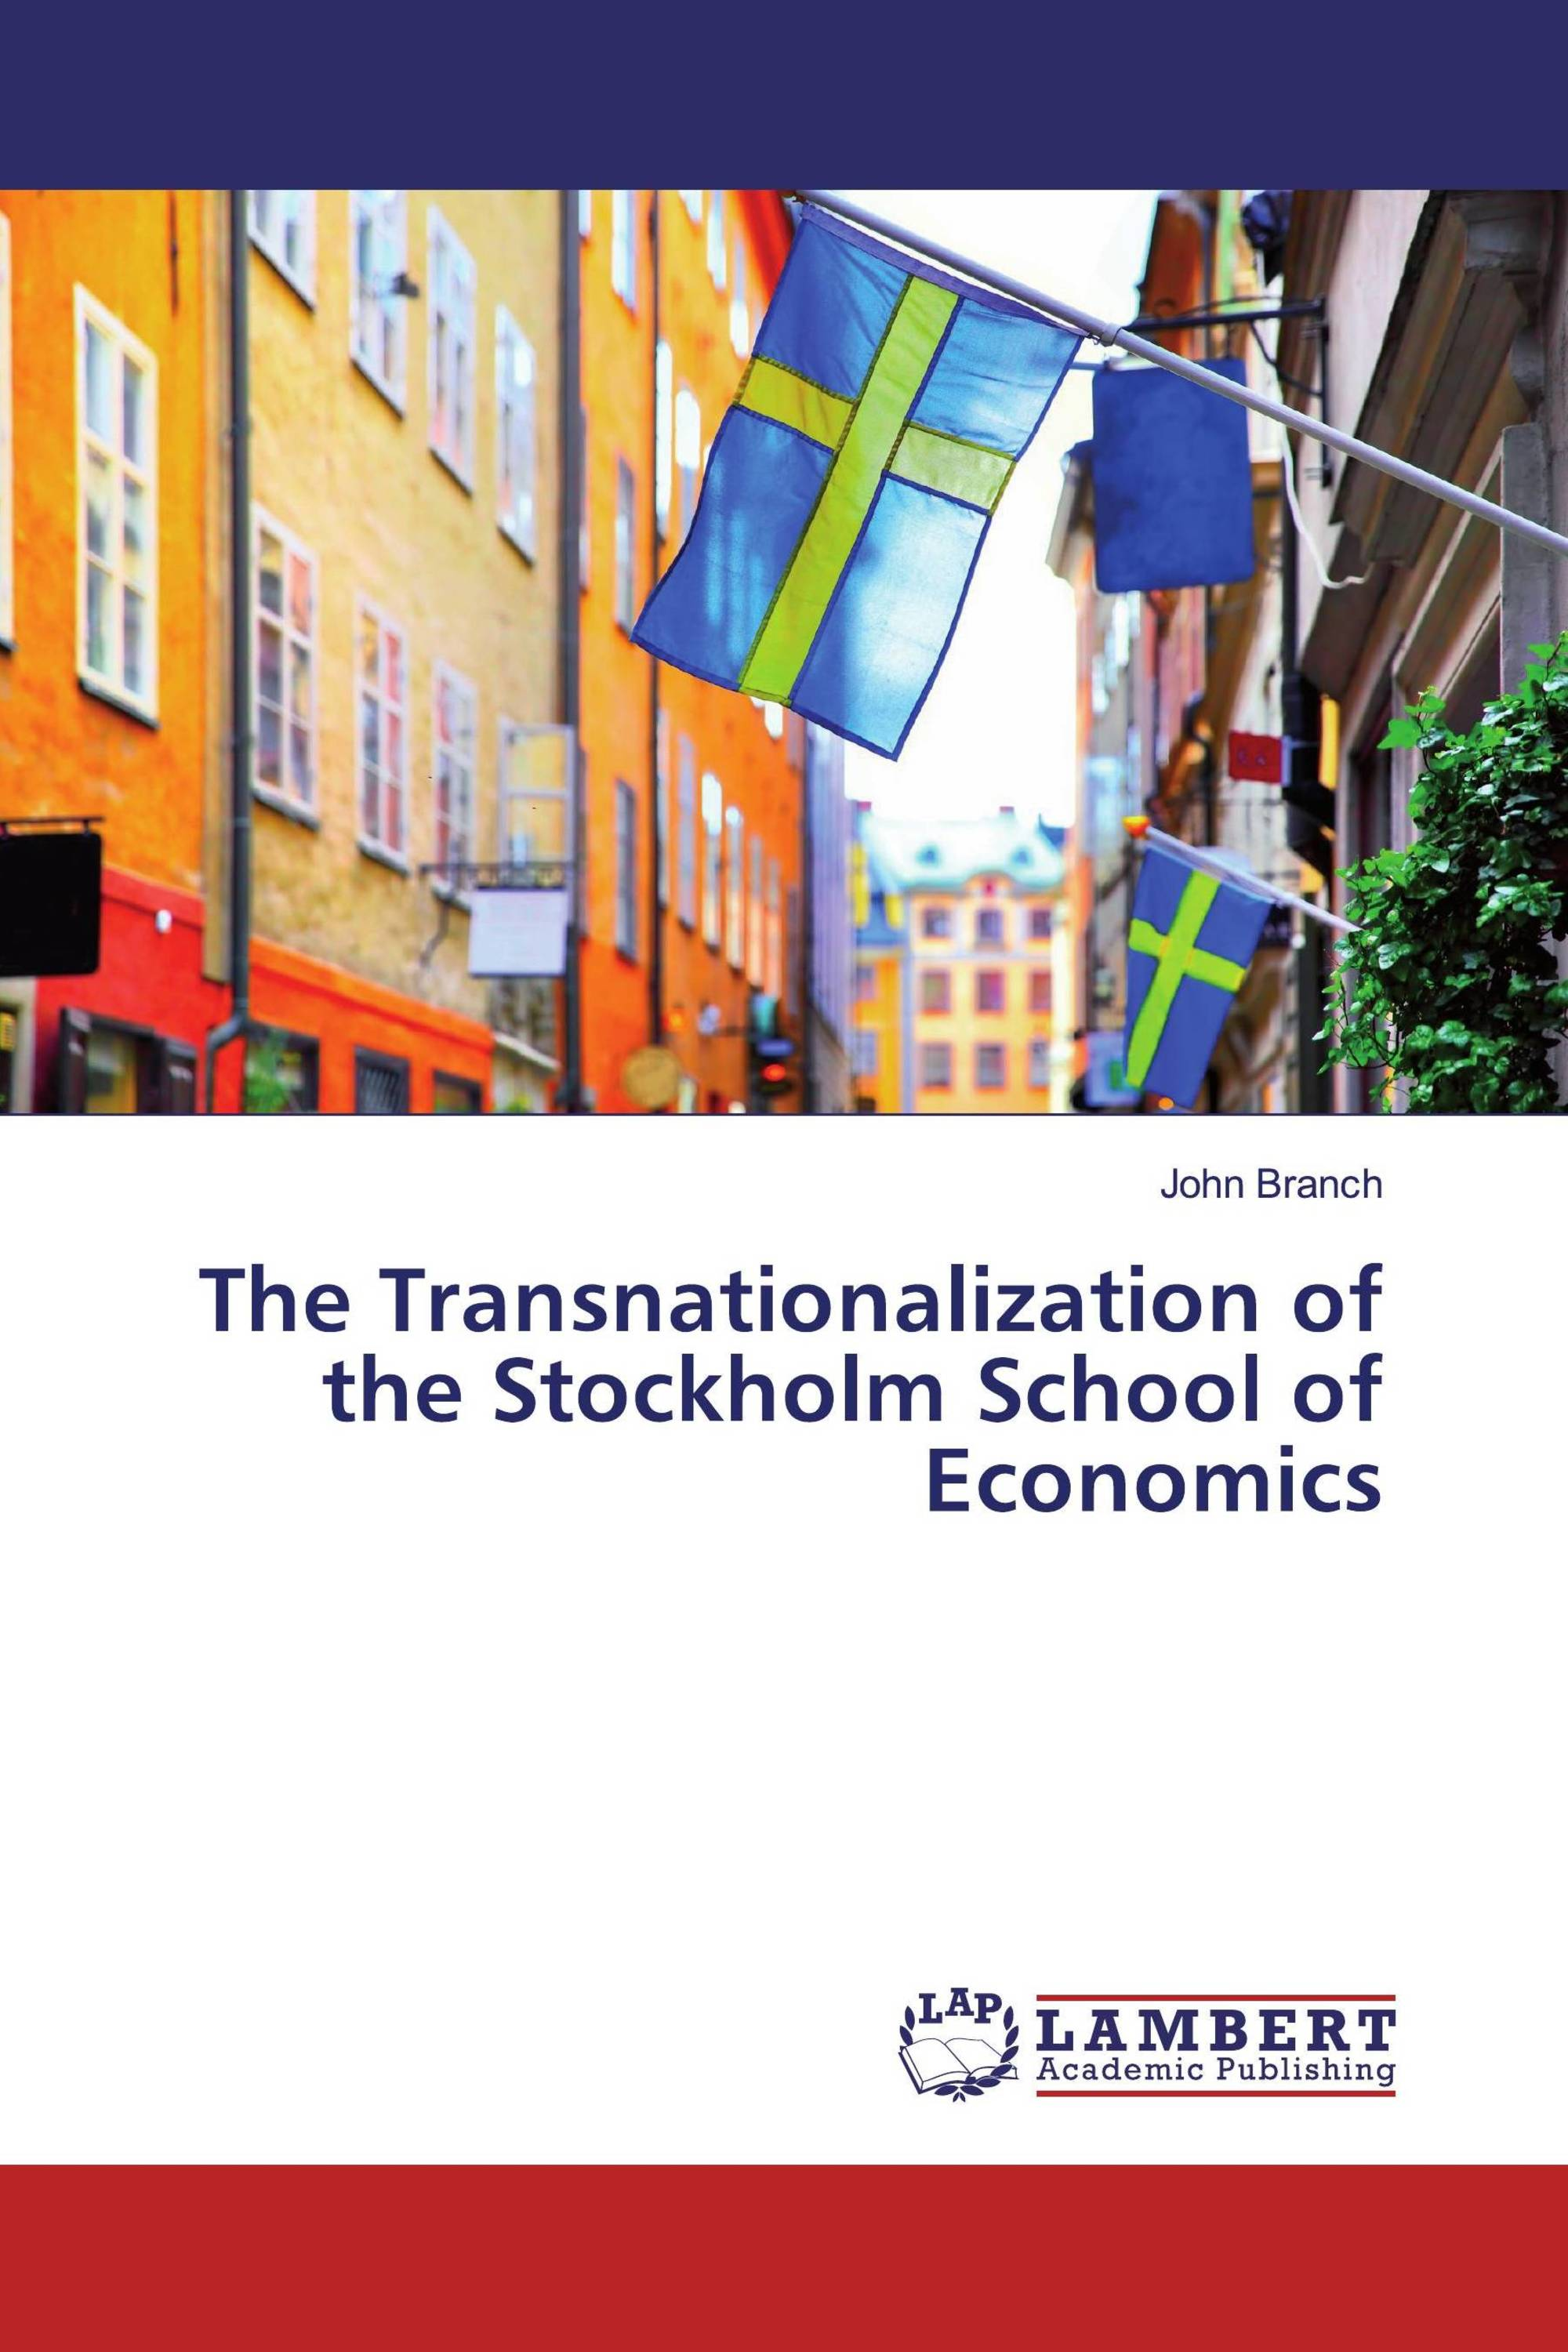 The Transnationalization of the Stockholm School of Economics